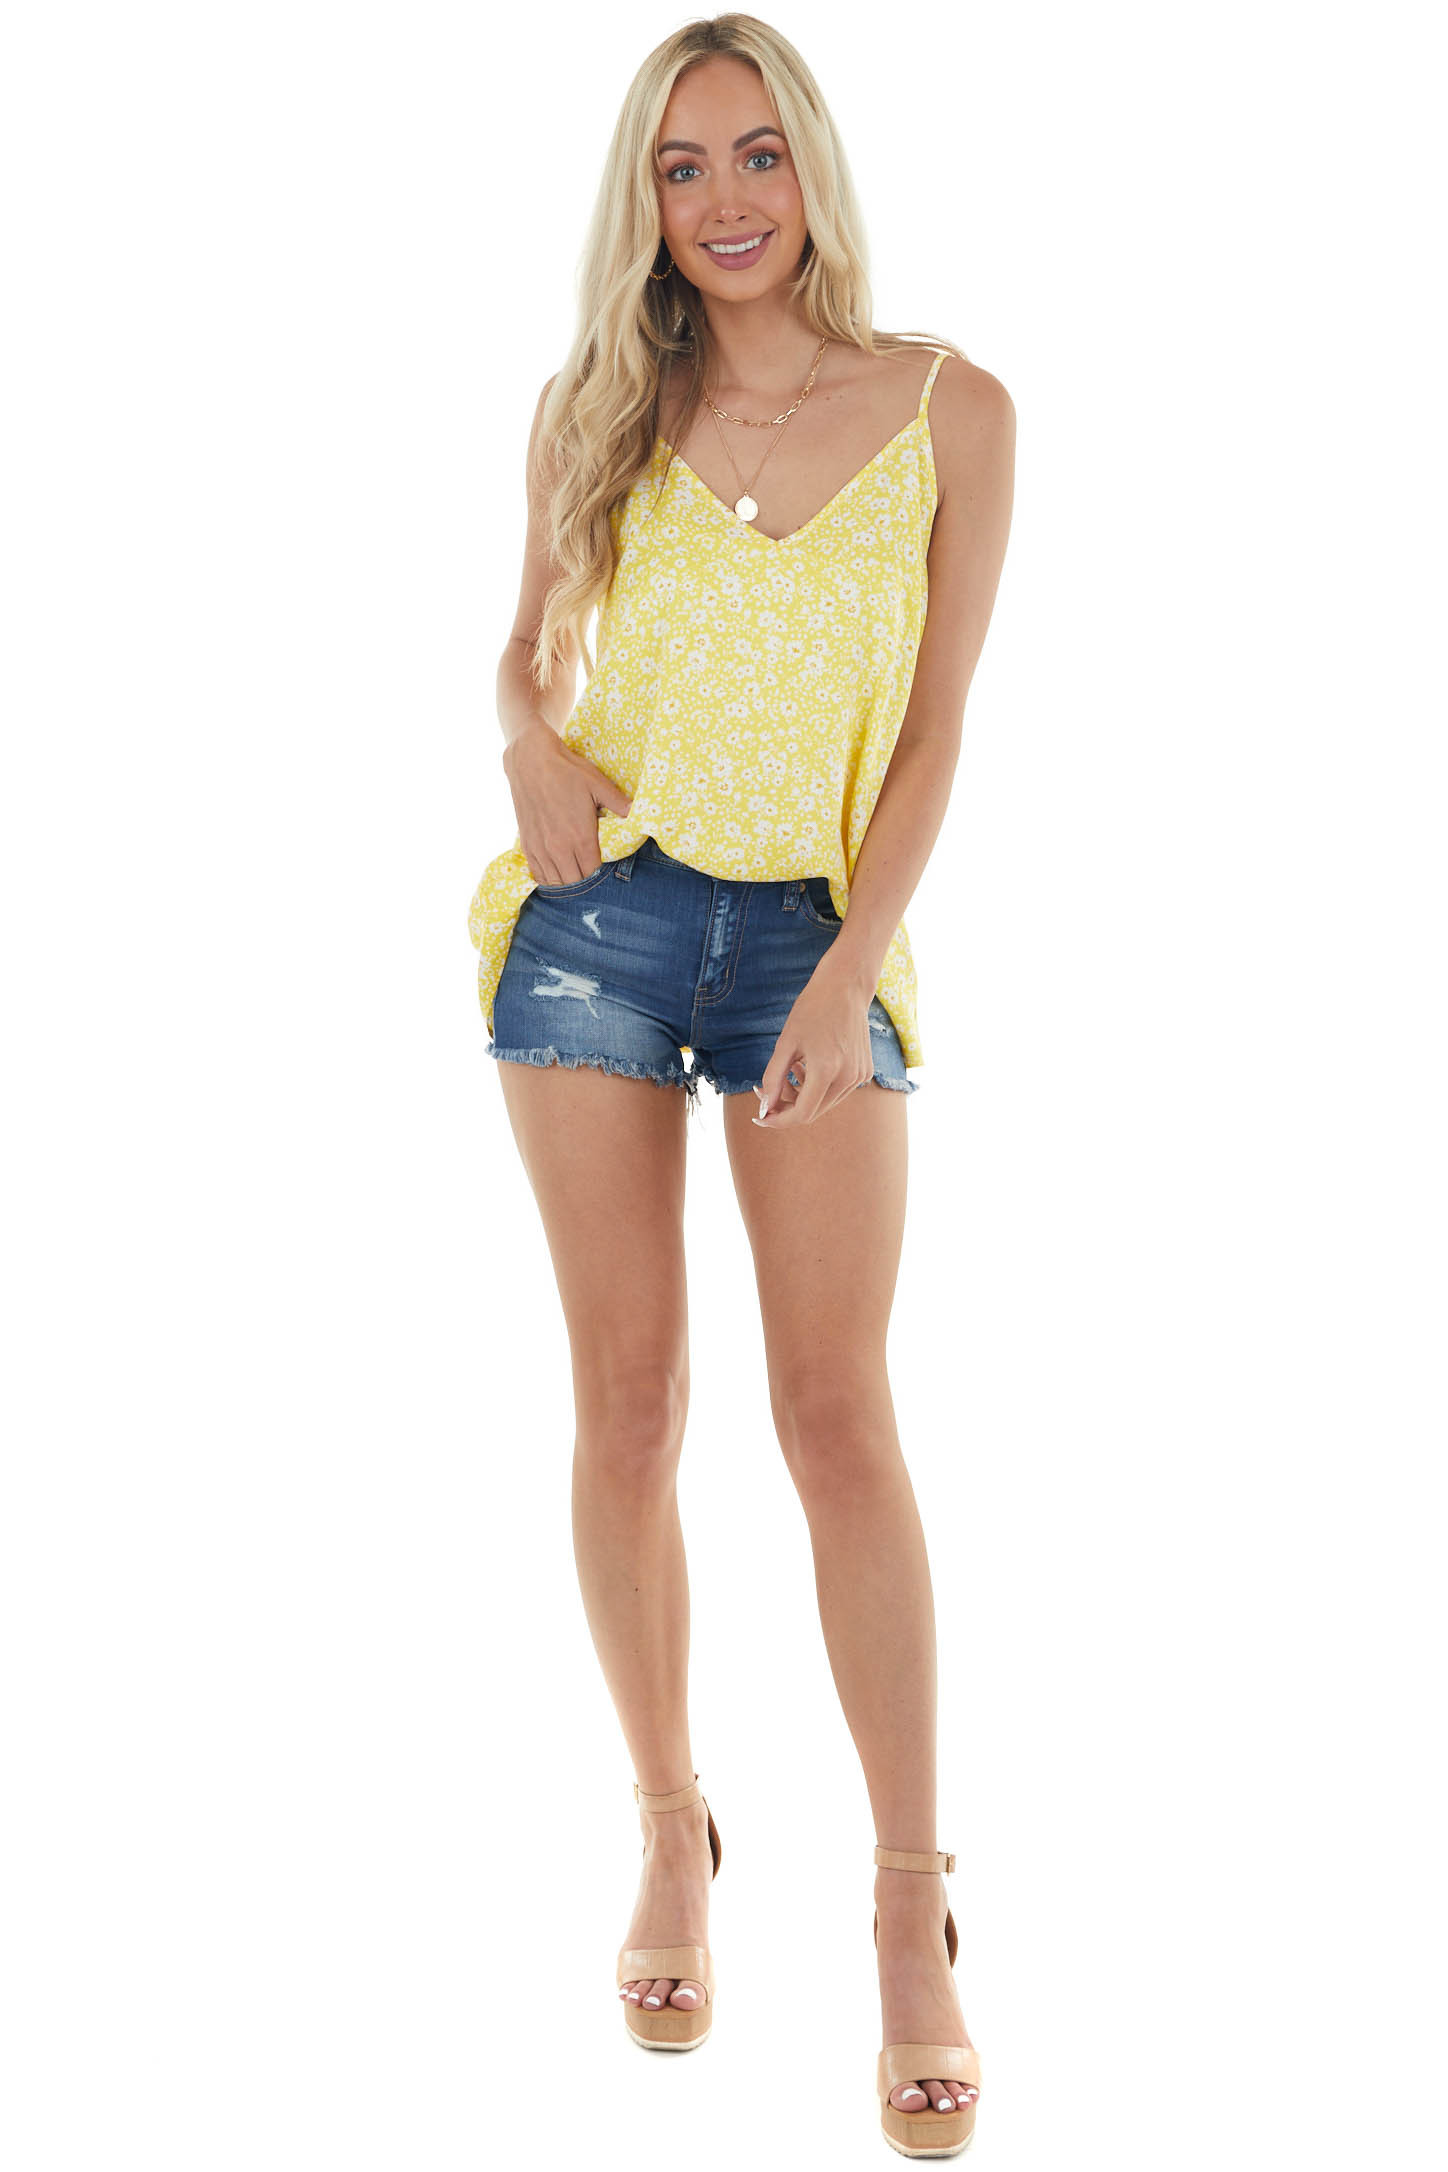 Canary Yellow Floral Print Sleeveless Top